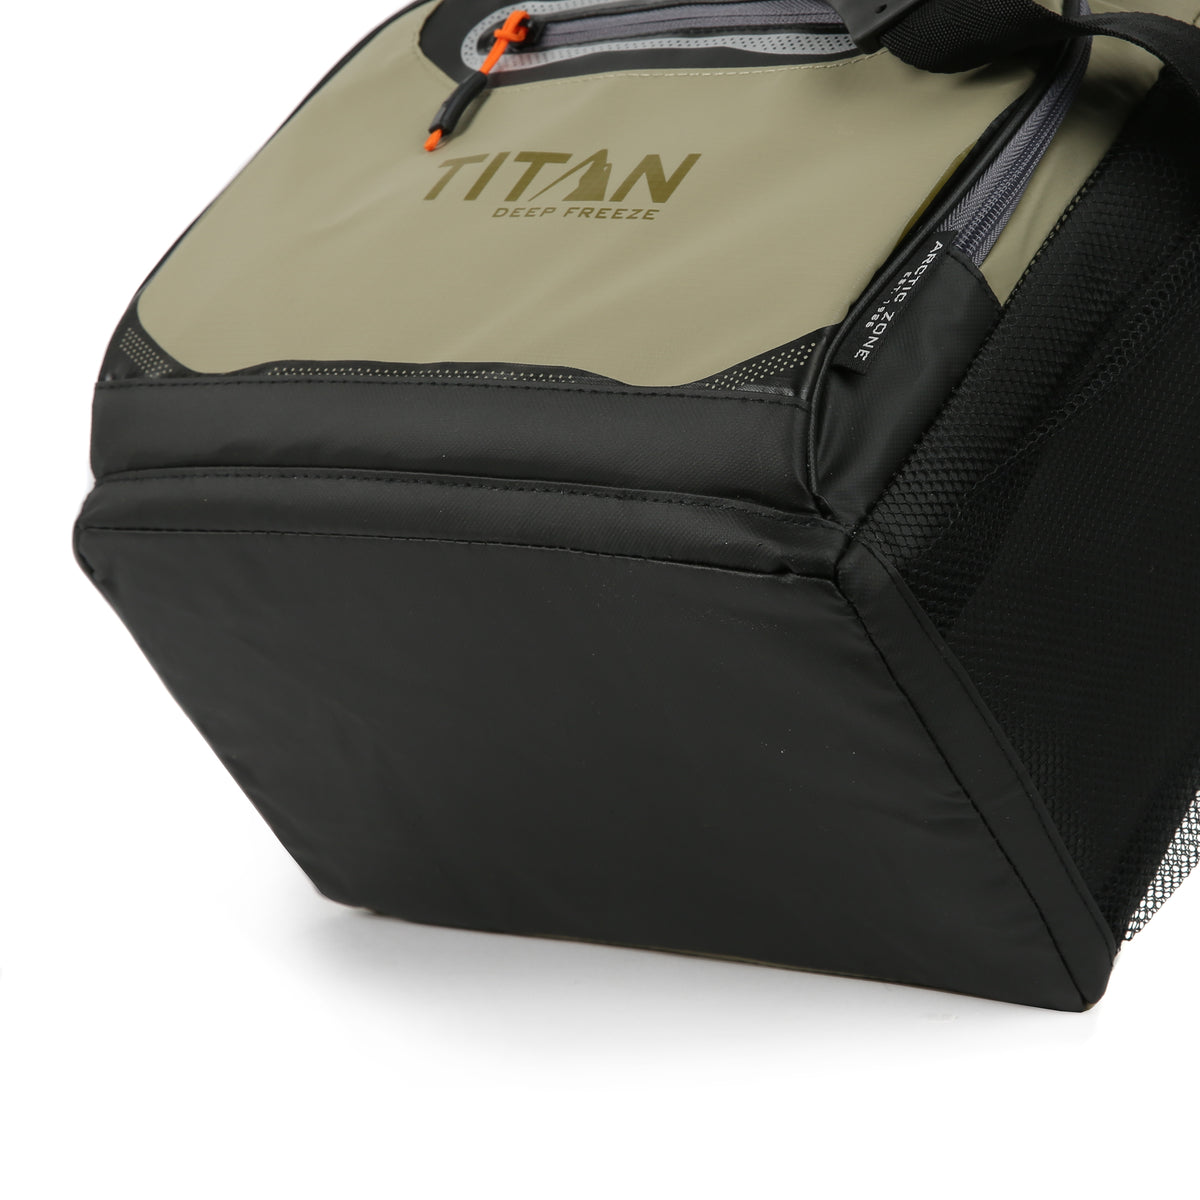 Titan Deep Freeze® 16 Can Zipperless™ HardBody® Cooler - Moss - Cooler bottom